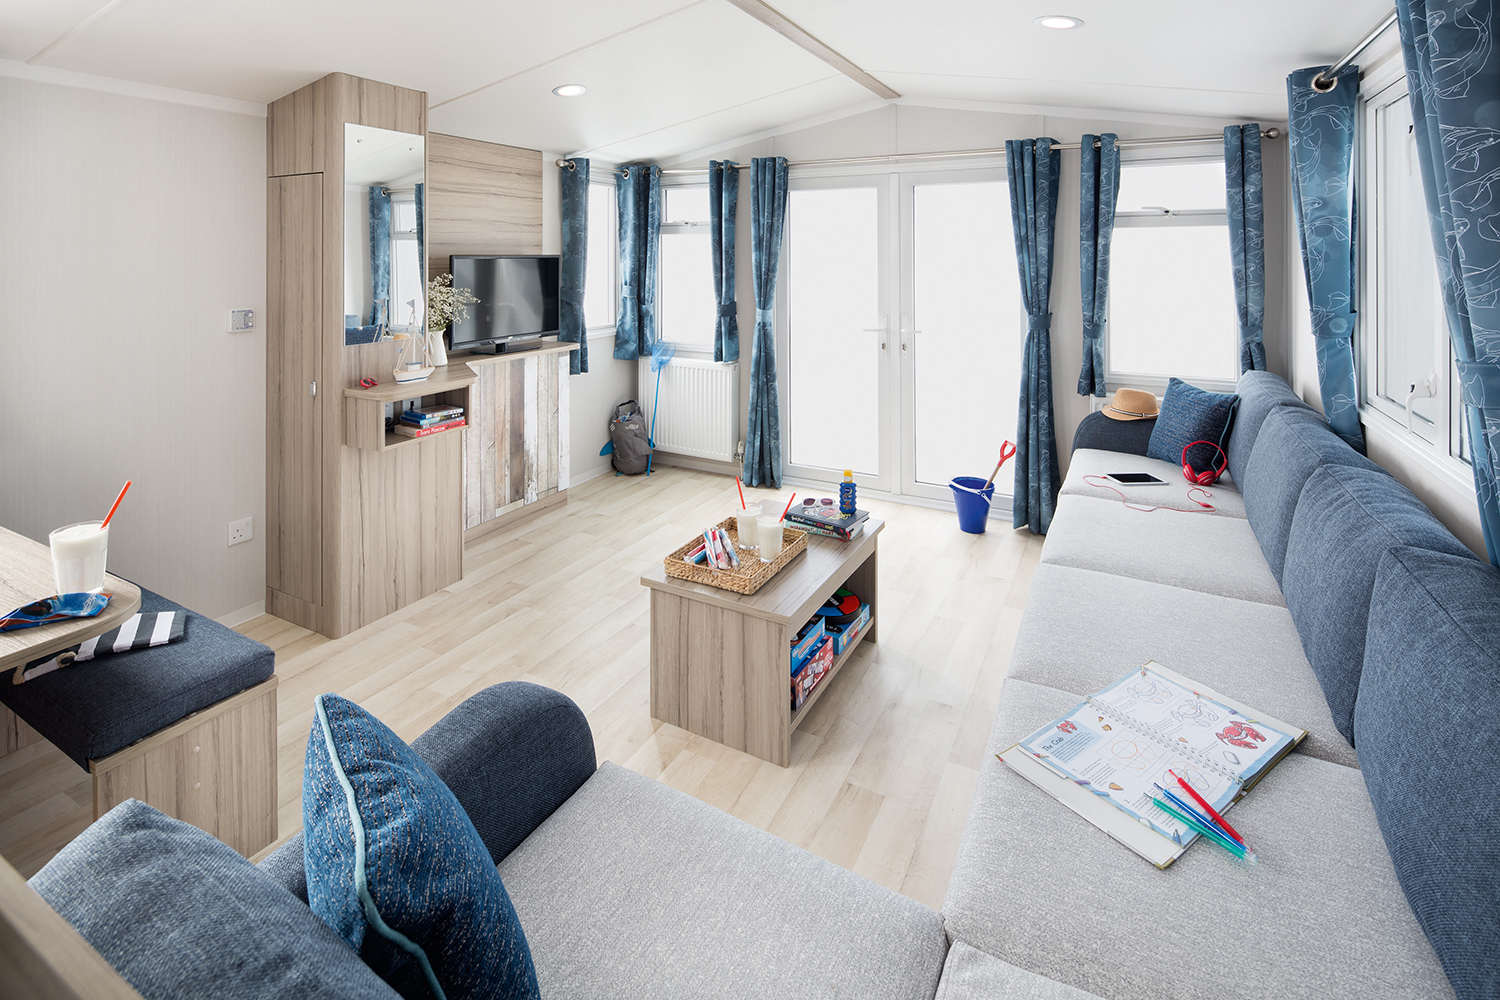 Holiday Homes for Sale near Durdle Door